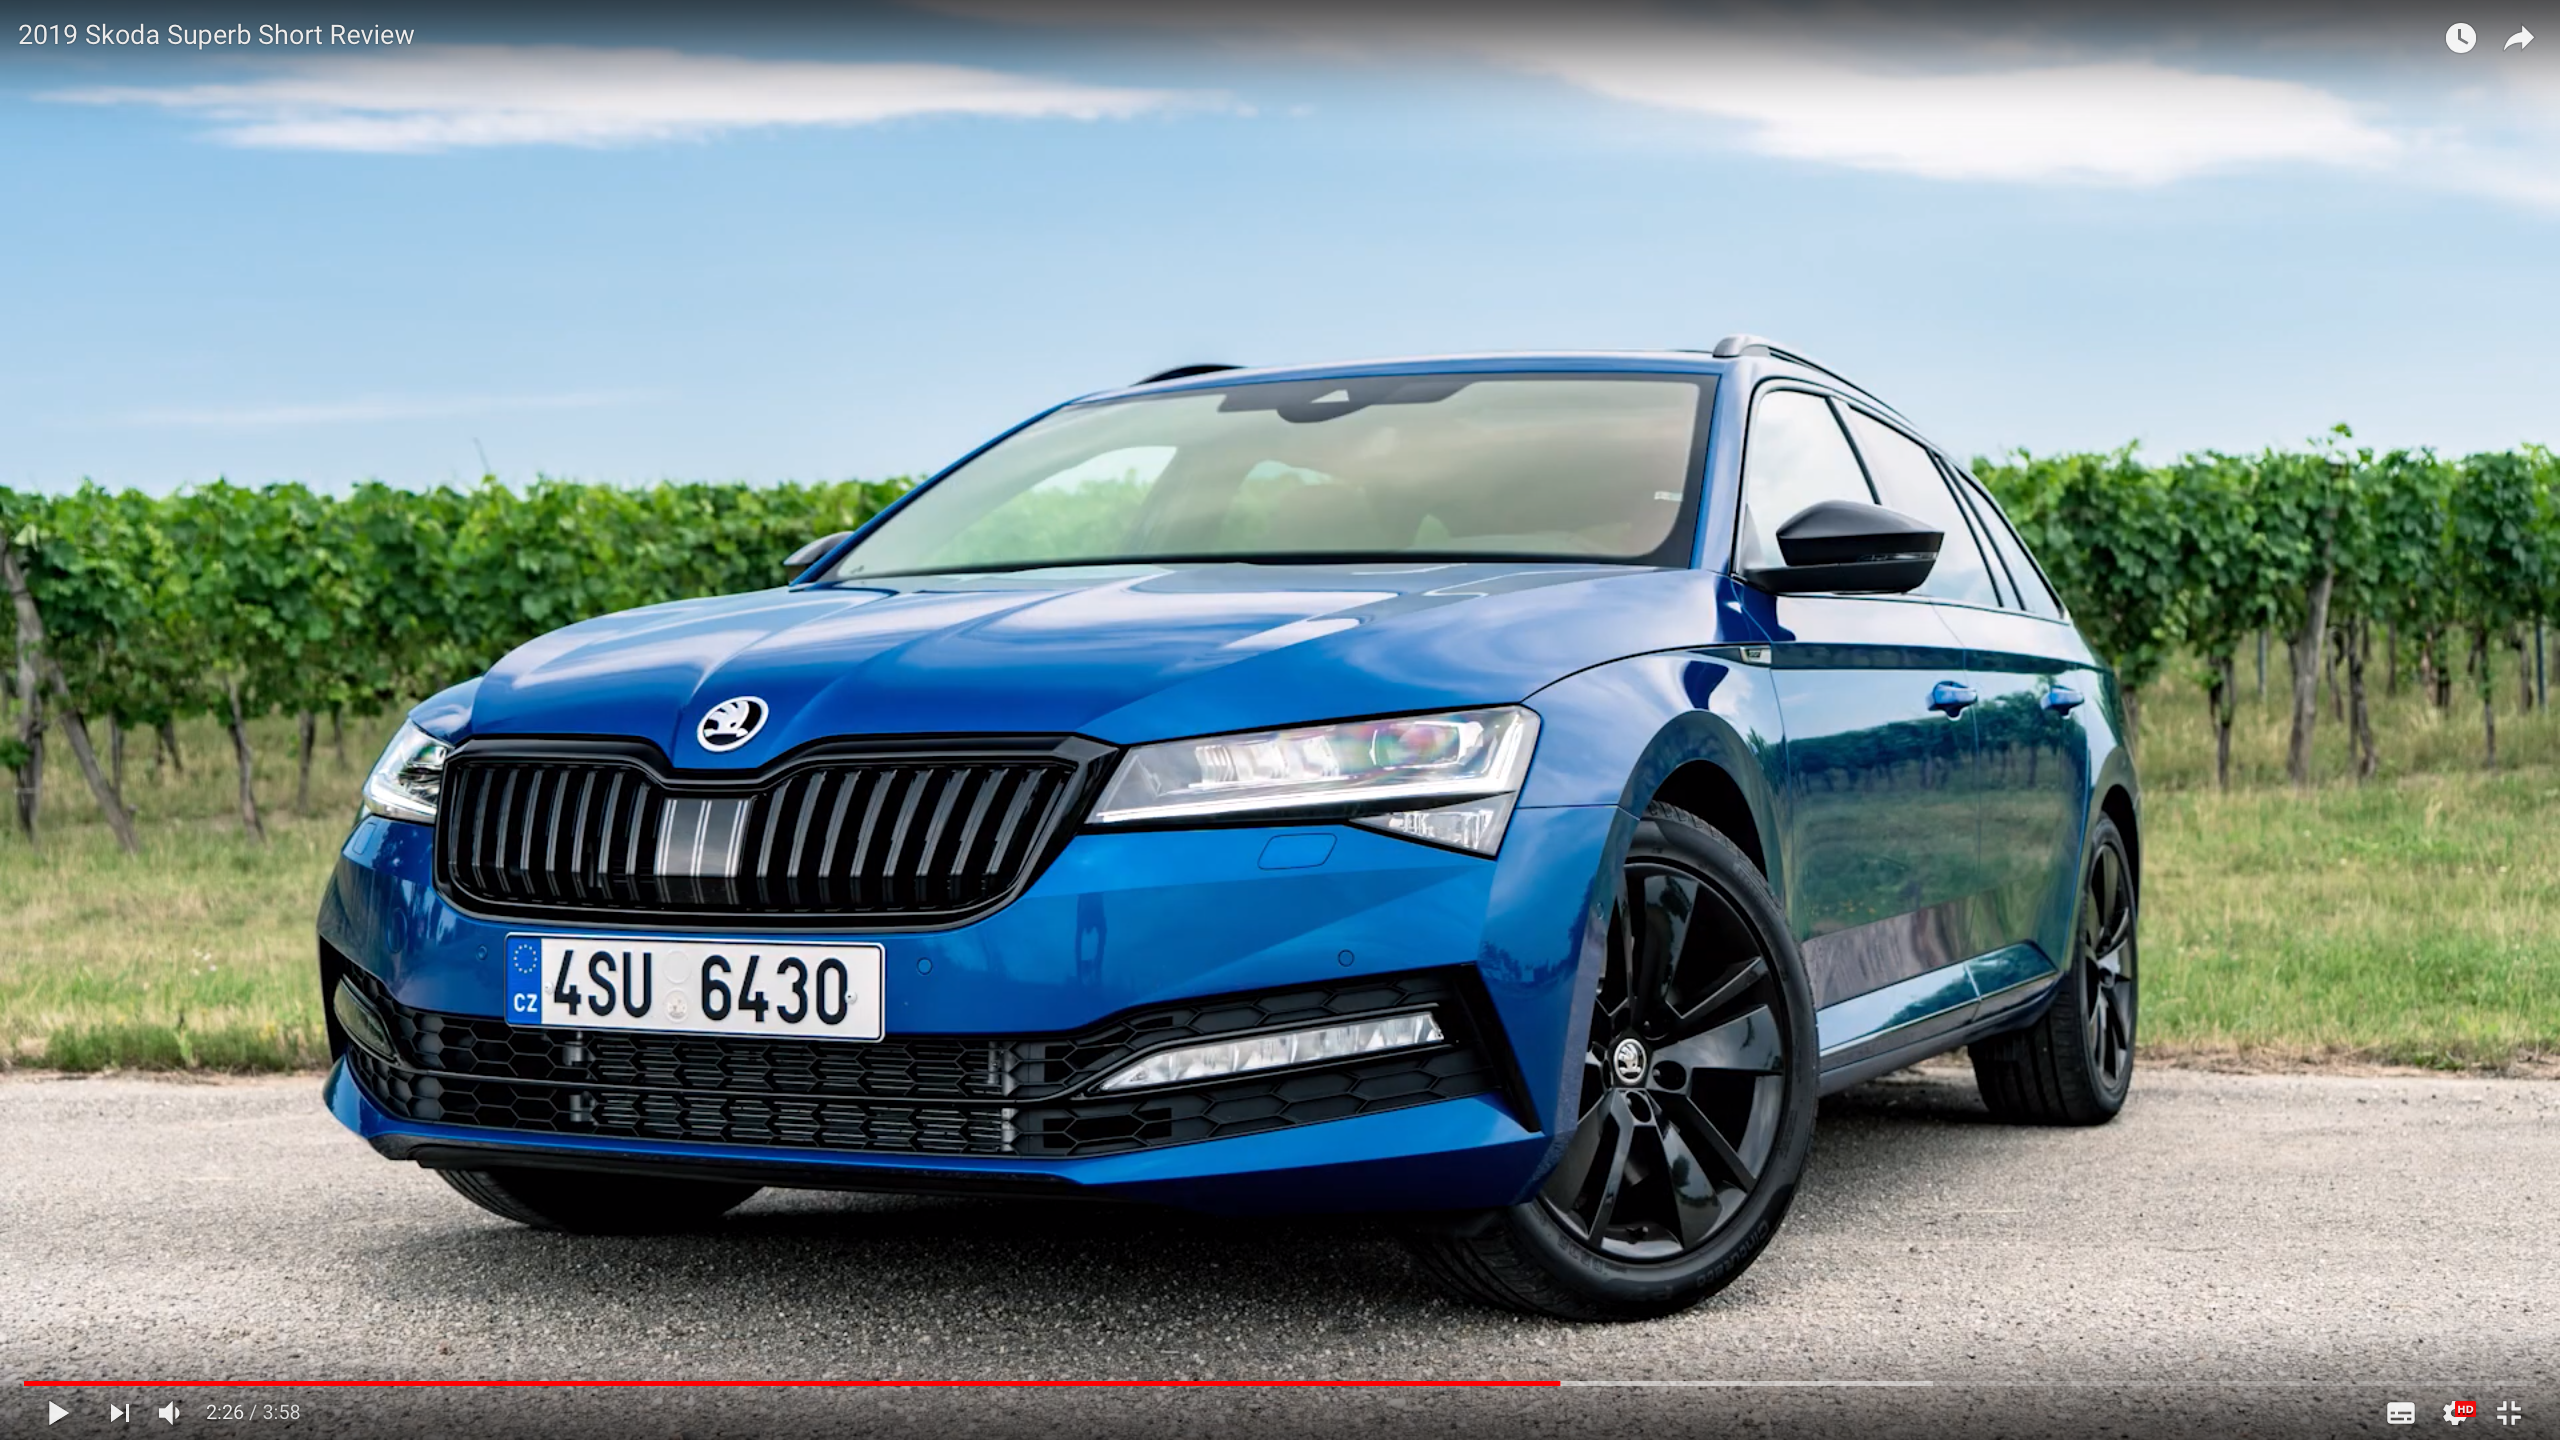 Sportline in Race Blue? - Skoda Superb Mk III - BRISKODA